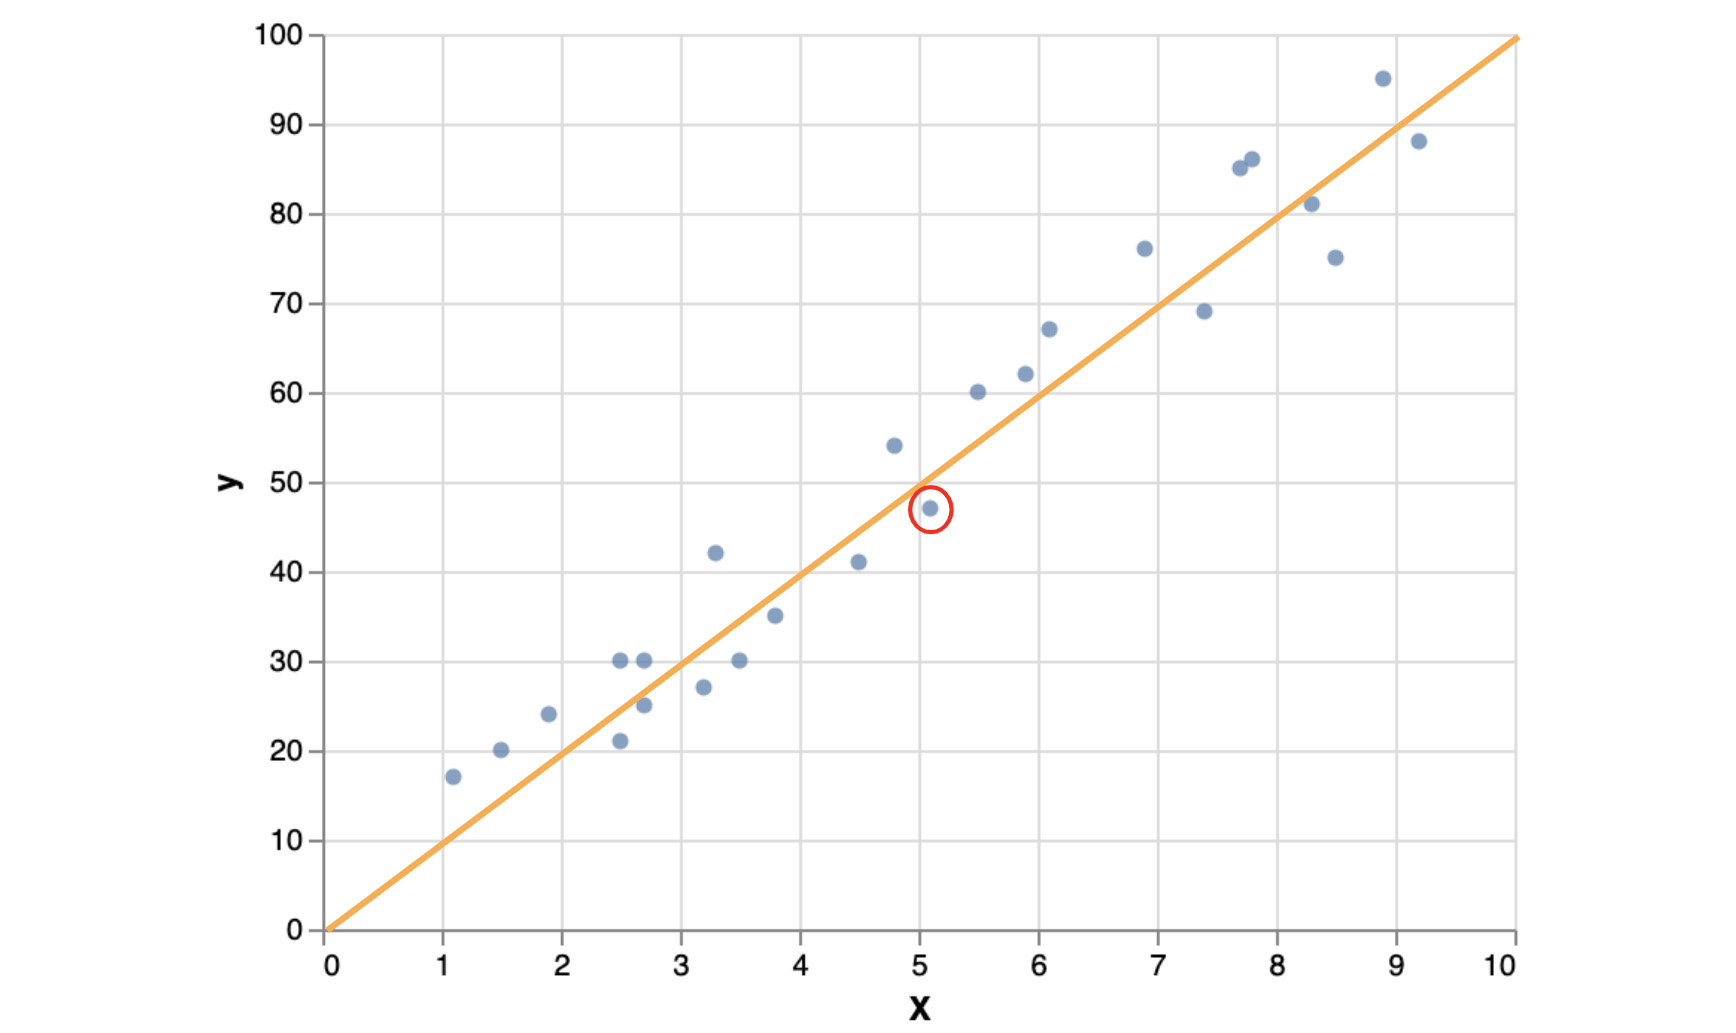 Figure 1.42: Fitted linear model on the example dataset